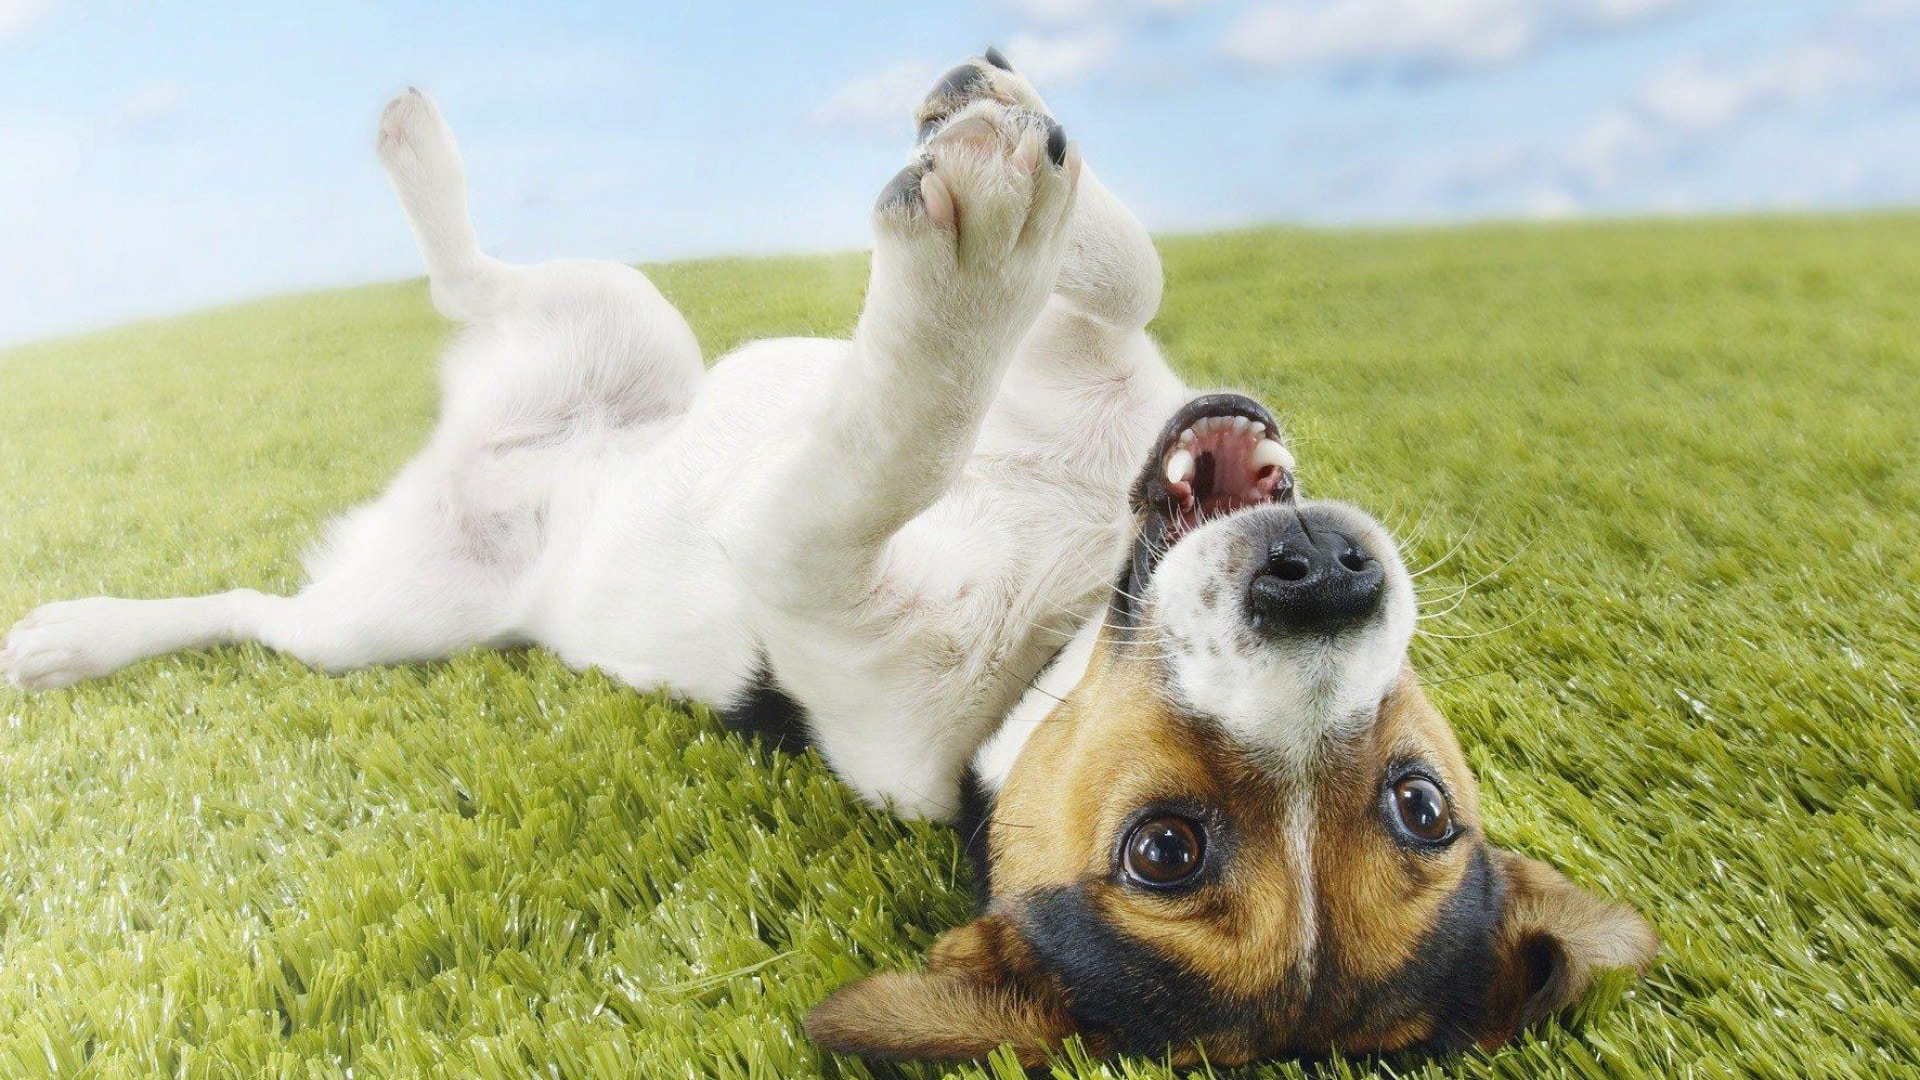 cute-dog-terrier-funny-pet-laugh-play-green-grassland-sunny-1920x1080